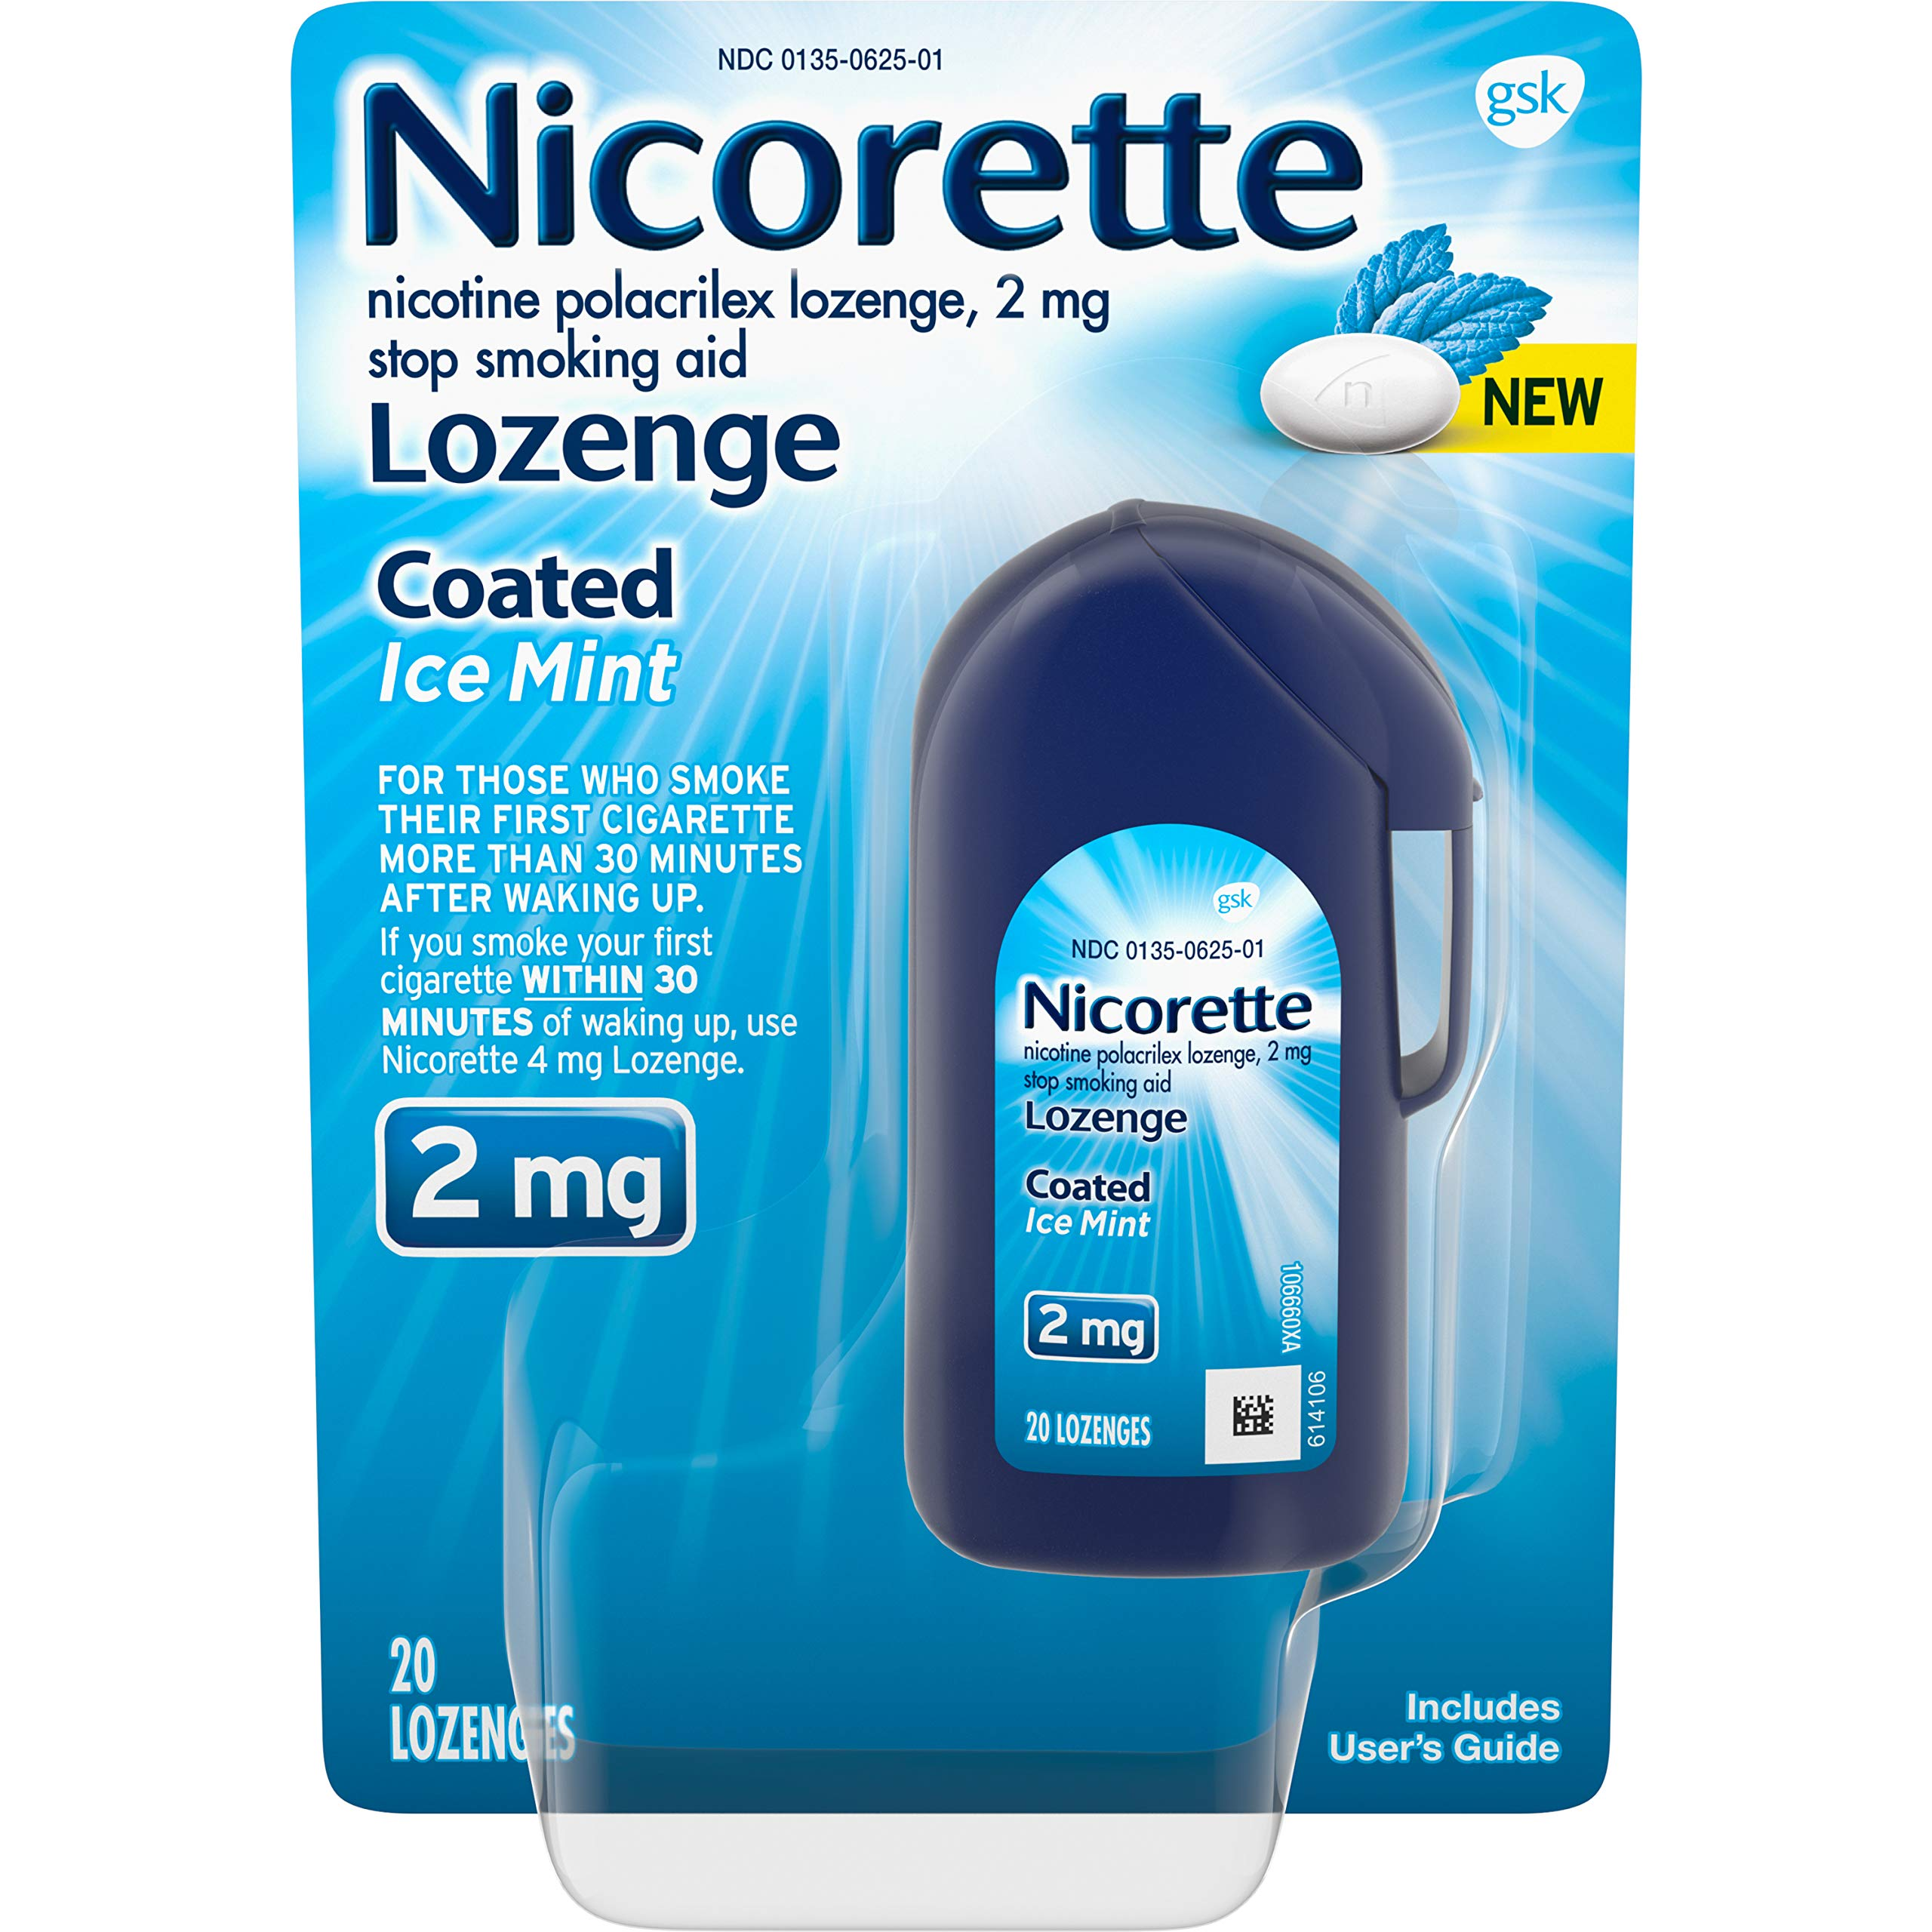 Nicorette 2mg Nicotine Lozenges to Quit Smoking - Ice Mint Flavored Stop Smoking Aid, 20 Count